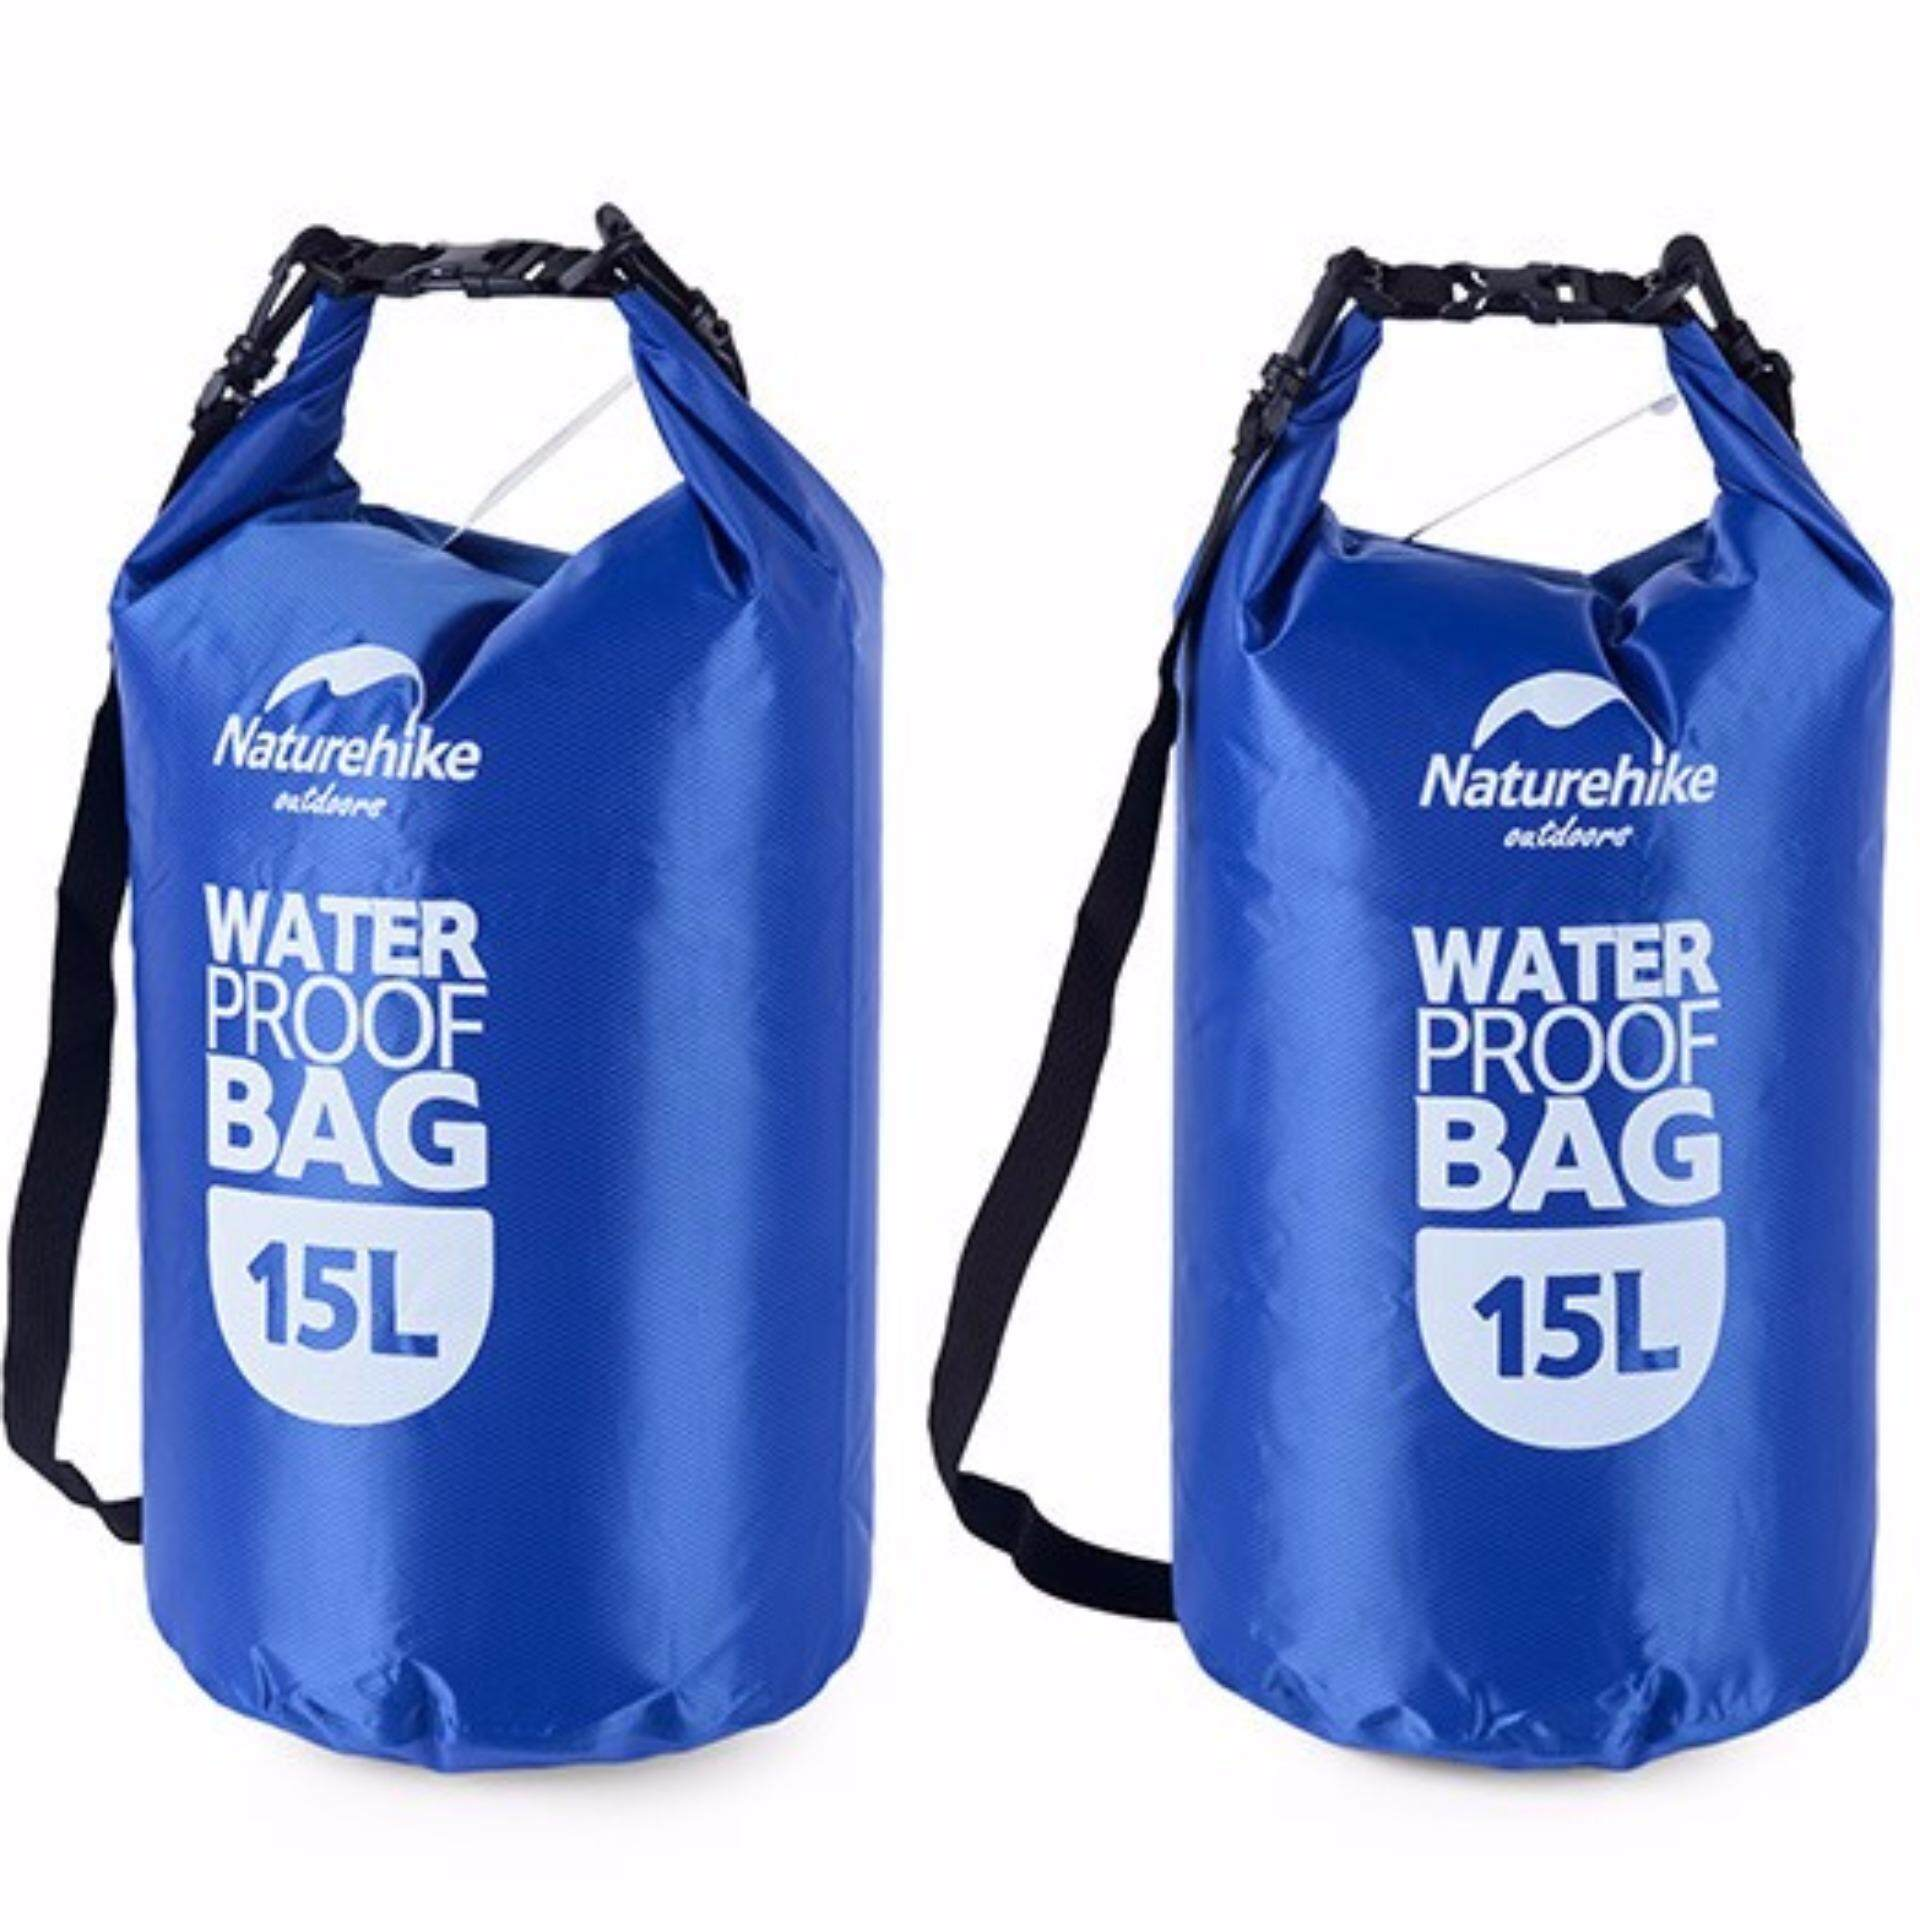 [ Quick Delivery ]  NatureHike Multifunctional Waterproof Dry Bag 15L - Blue